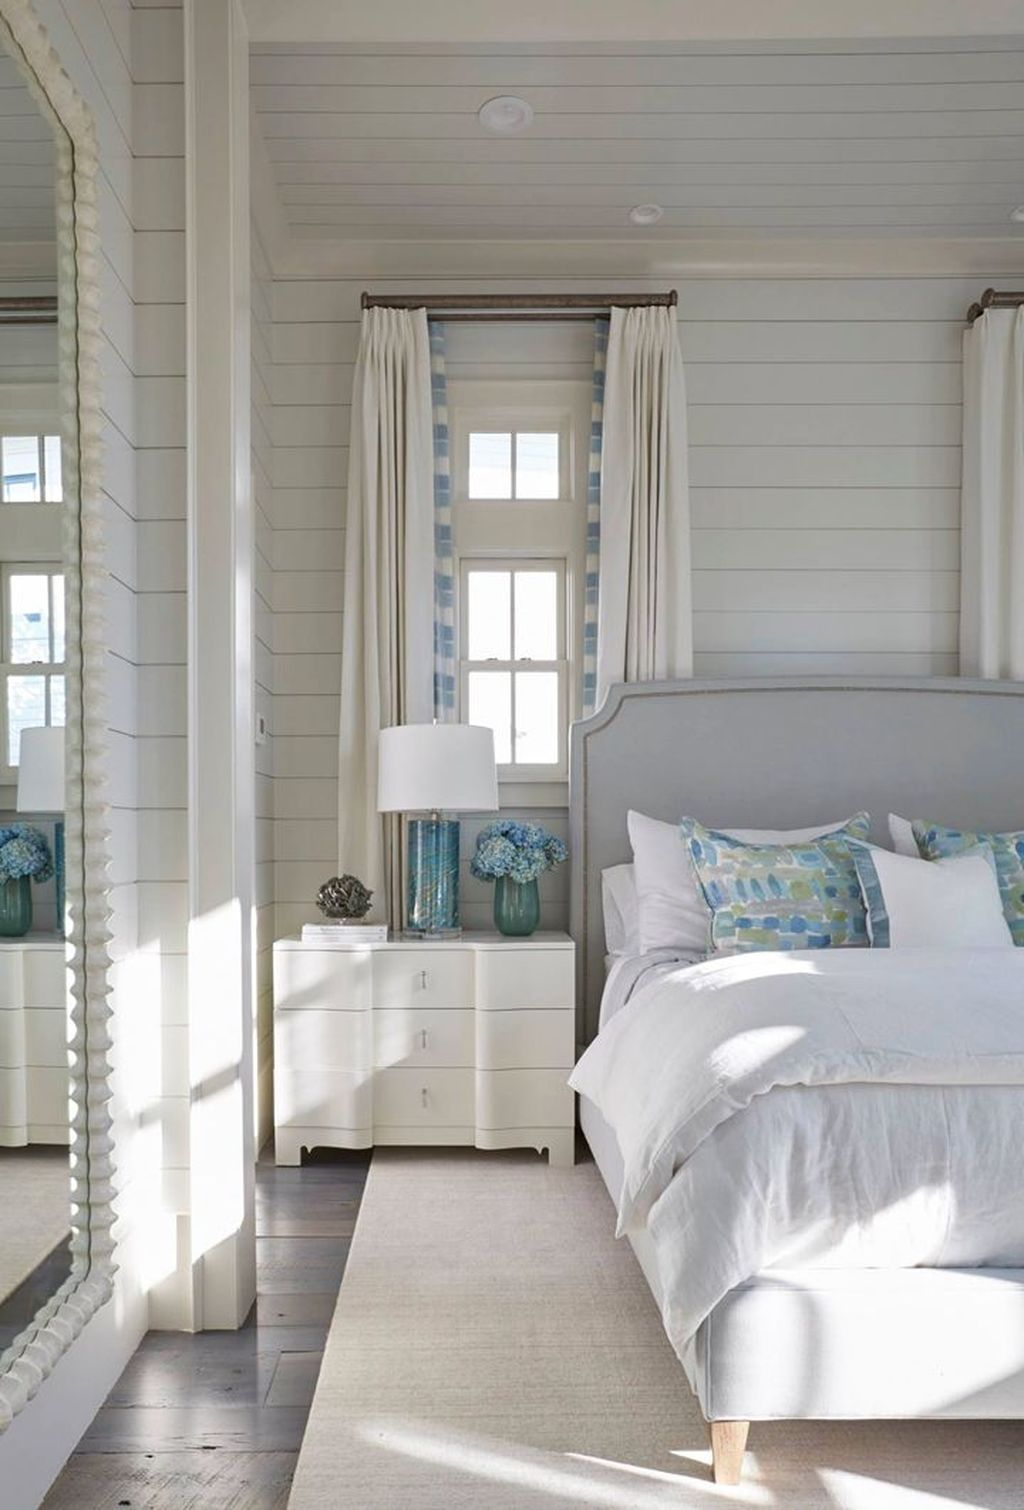 49 Top Lake House Bedroom Decorating Ideas Bedroom Bedroomdecor Bedroomdesign Beach House Interior Design Lakehouse Bedroom Beach House Bedroom